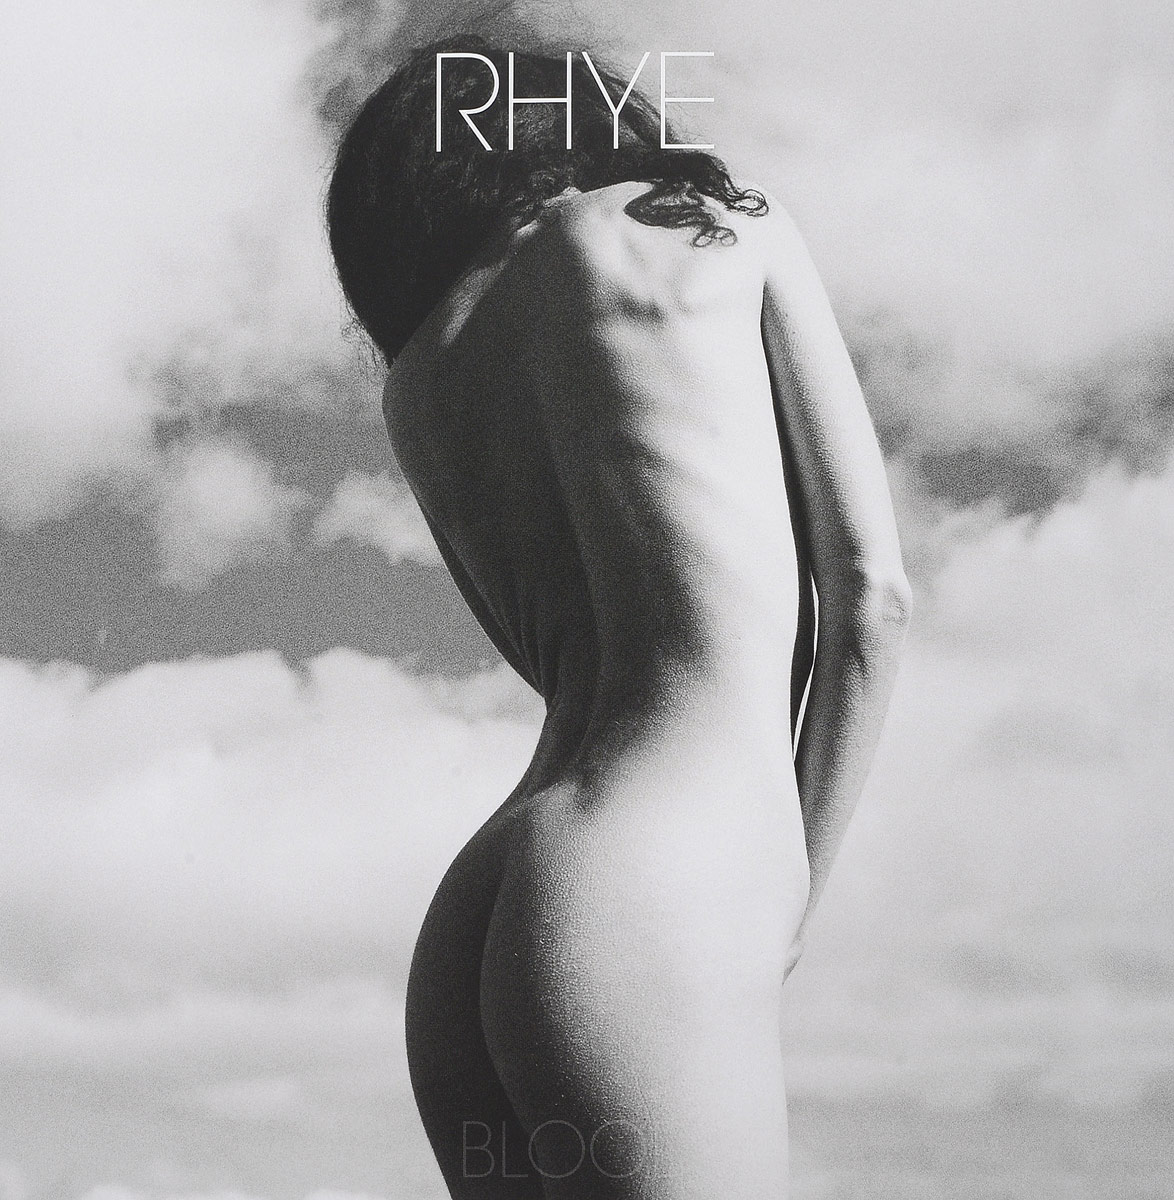 """Rhye"" Rhye. Blood (LP)"